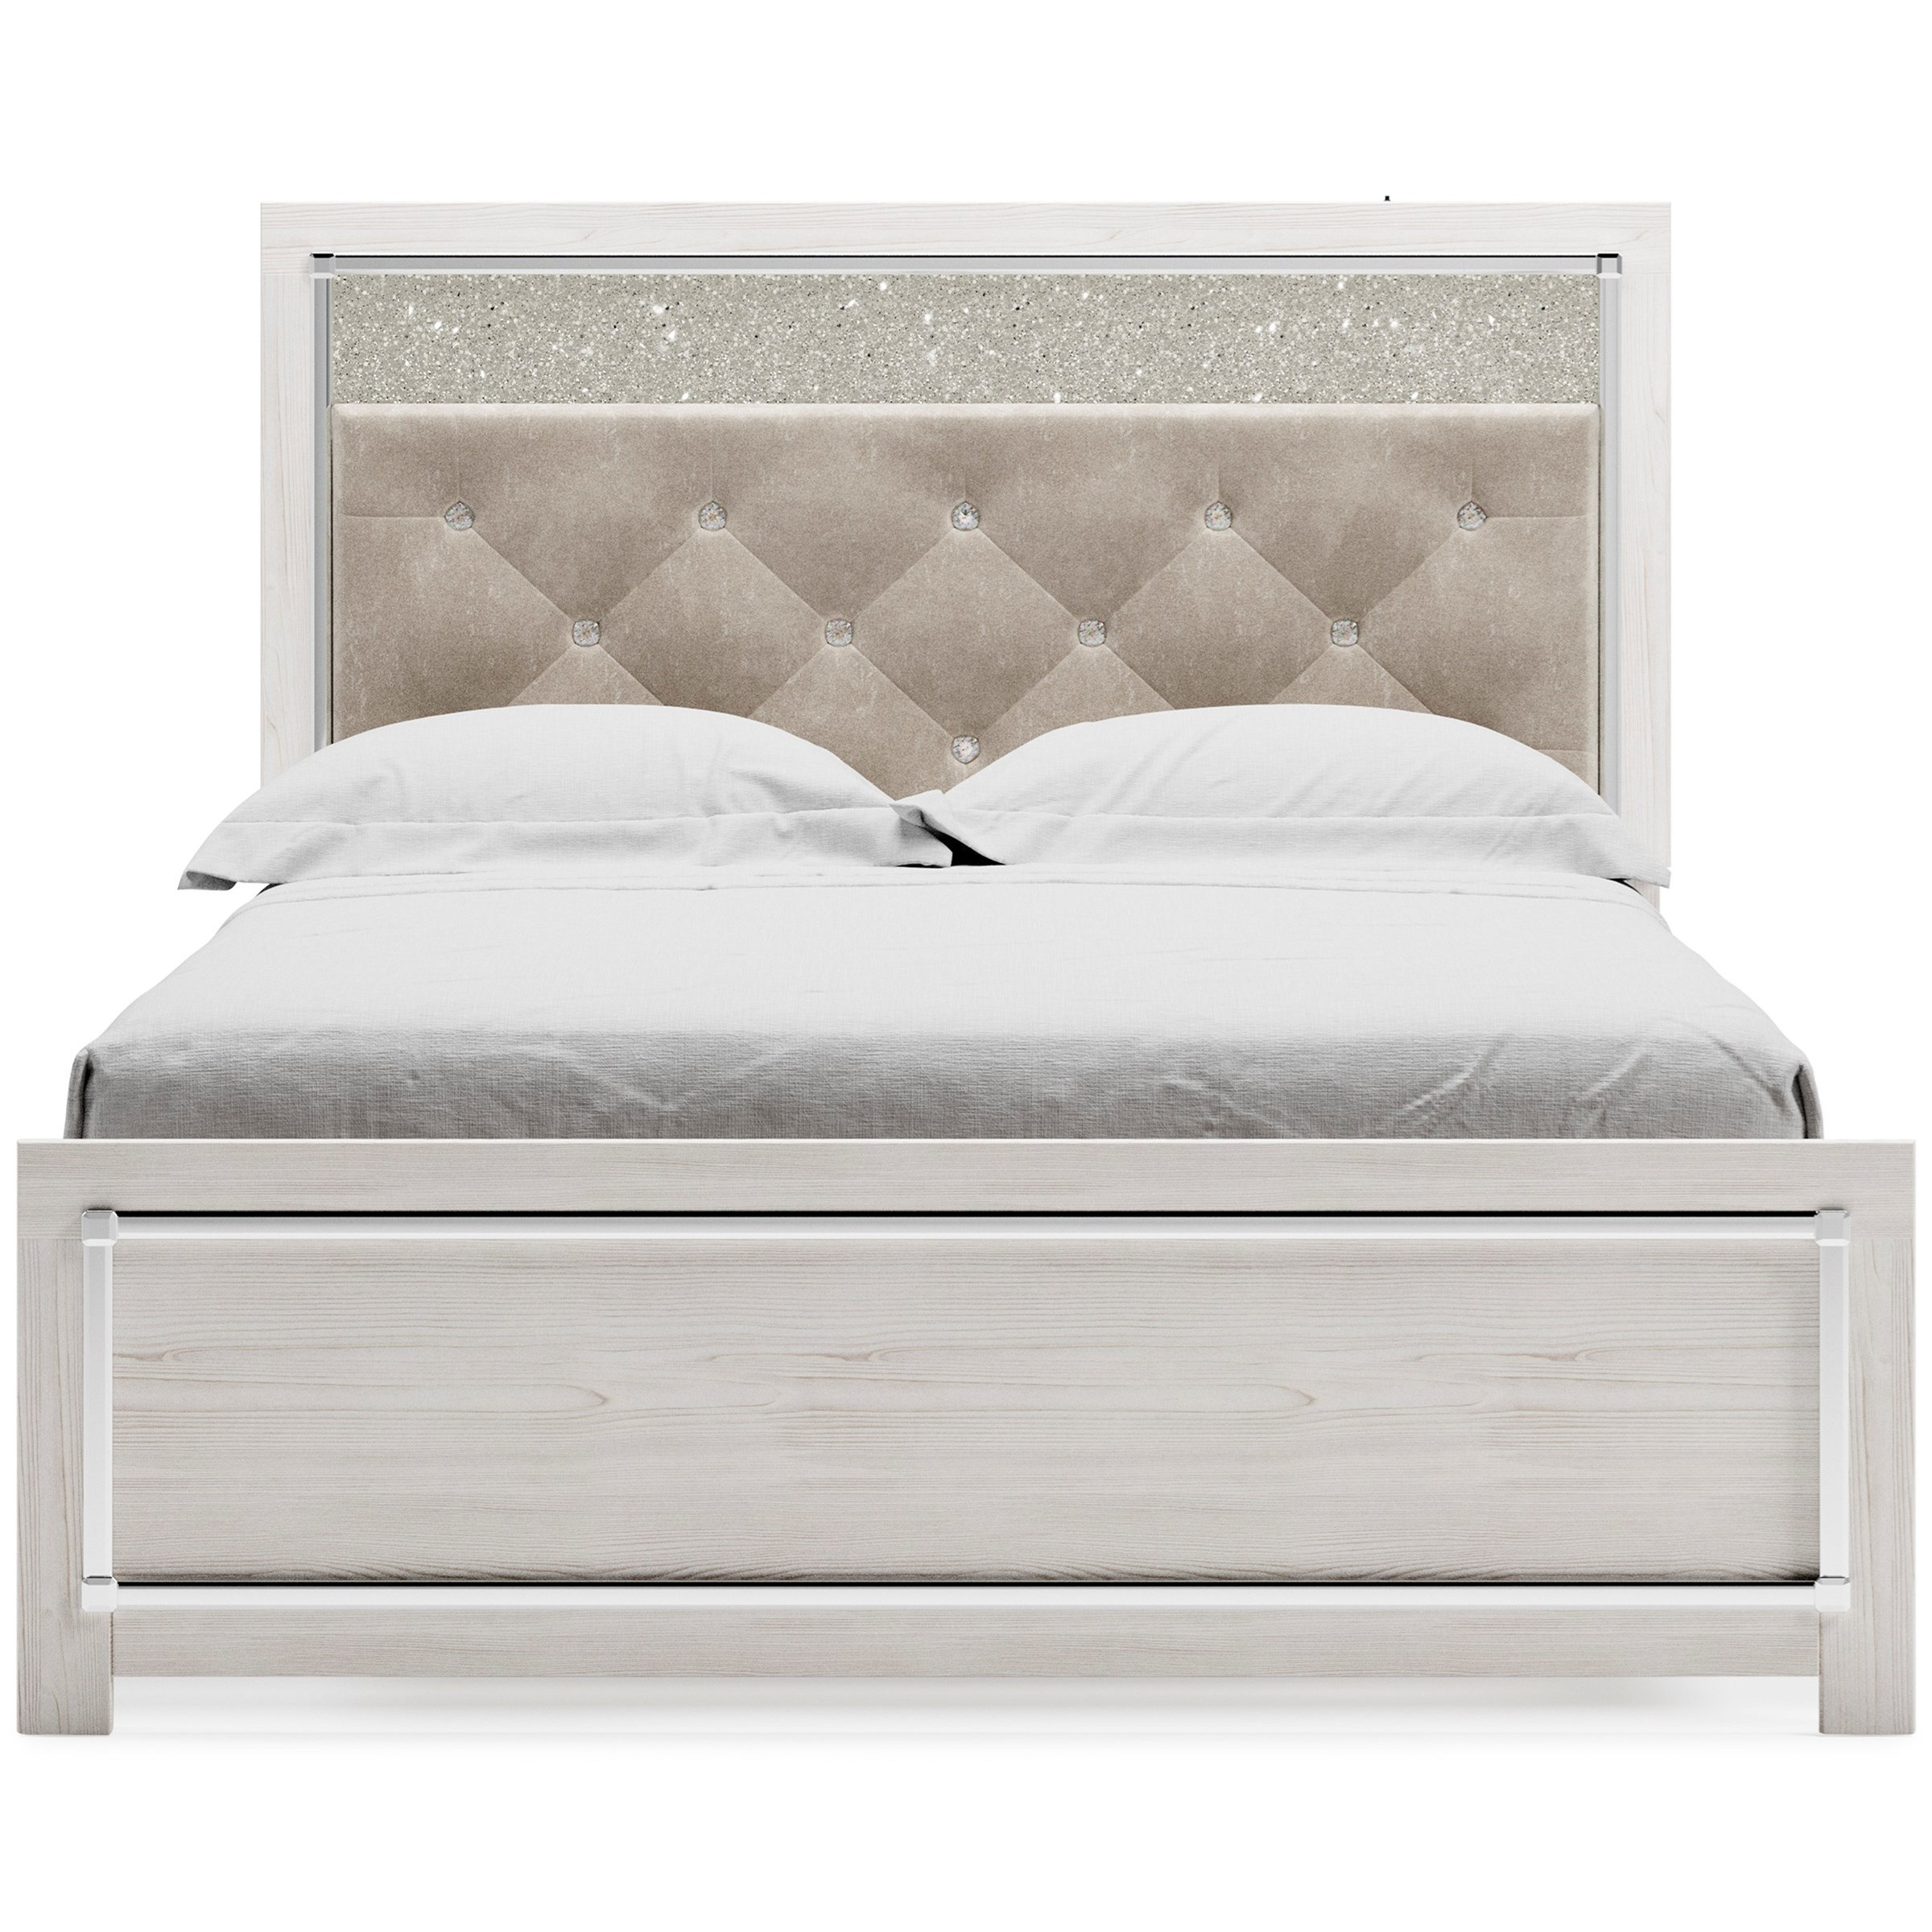 Altyra Queen Upholstered Panel Bed by Signature Design by Ashley at Smart Buy Furniture